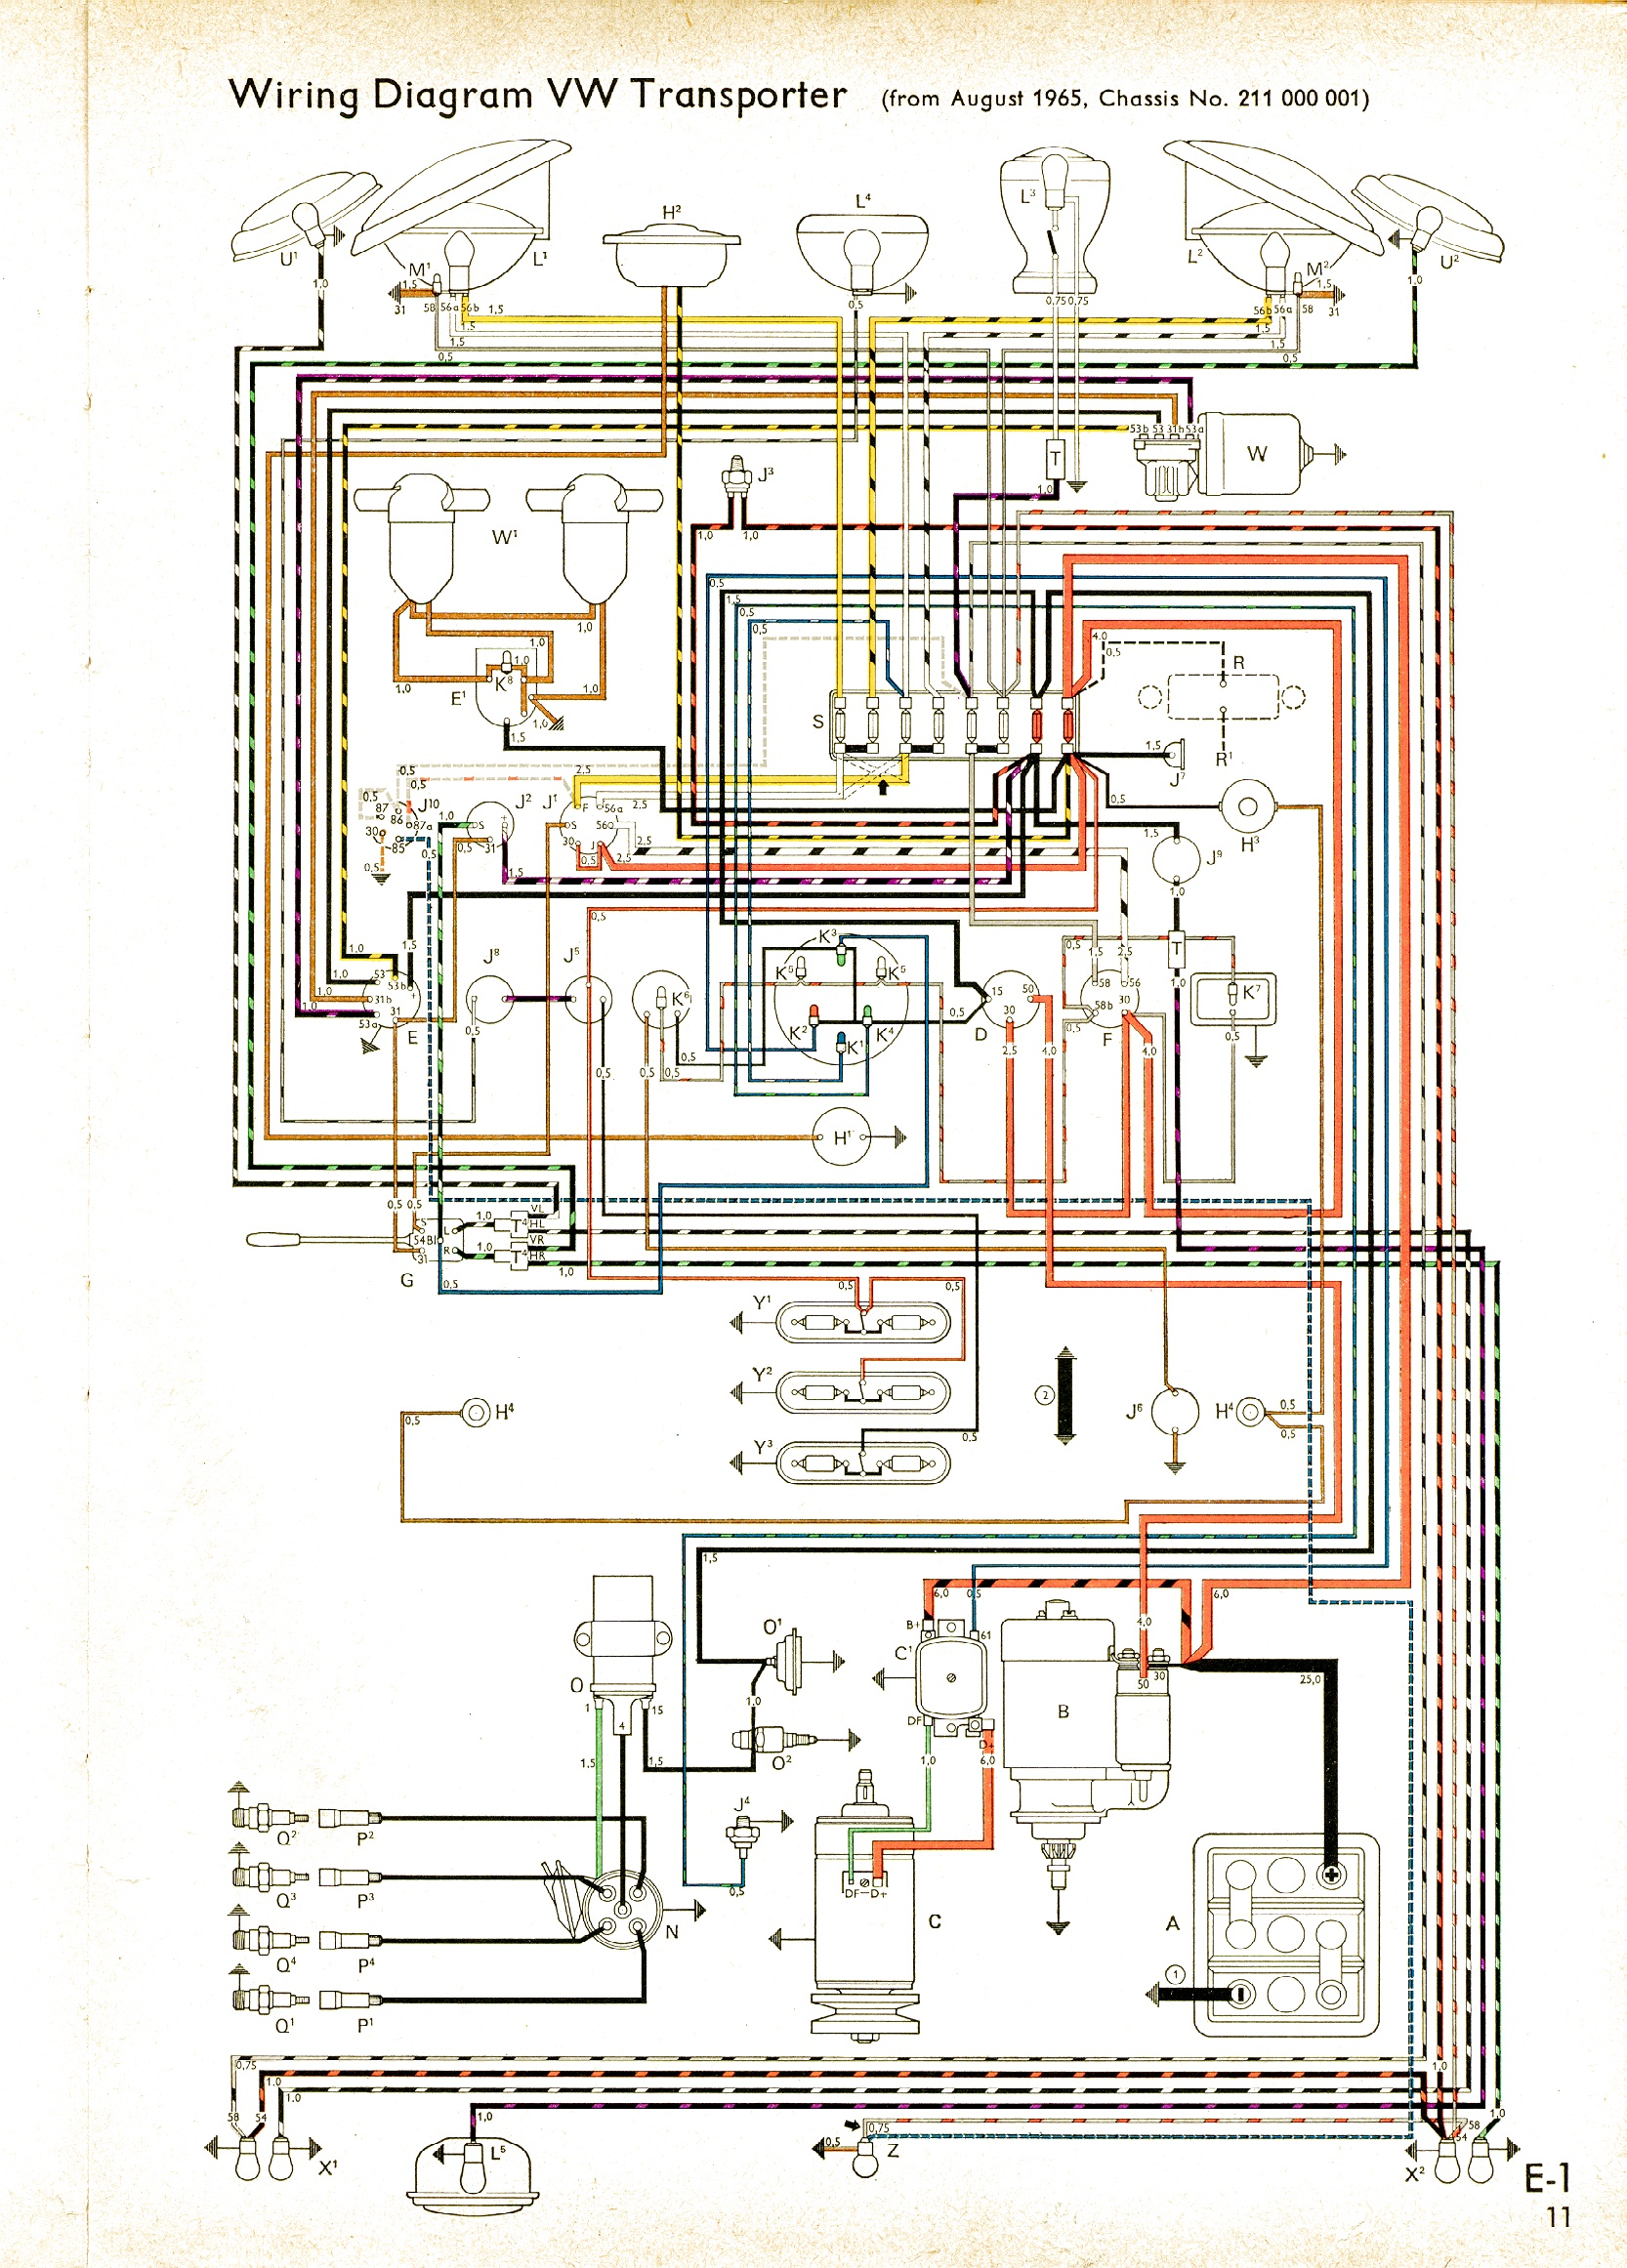 hight resolution of vintagebus com vw bus and other wiring diagrams rh vintagebus com 2004 vw beetle air conditioning diagram volkswagen 2002 beetle wiring diagram